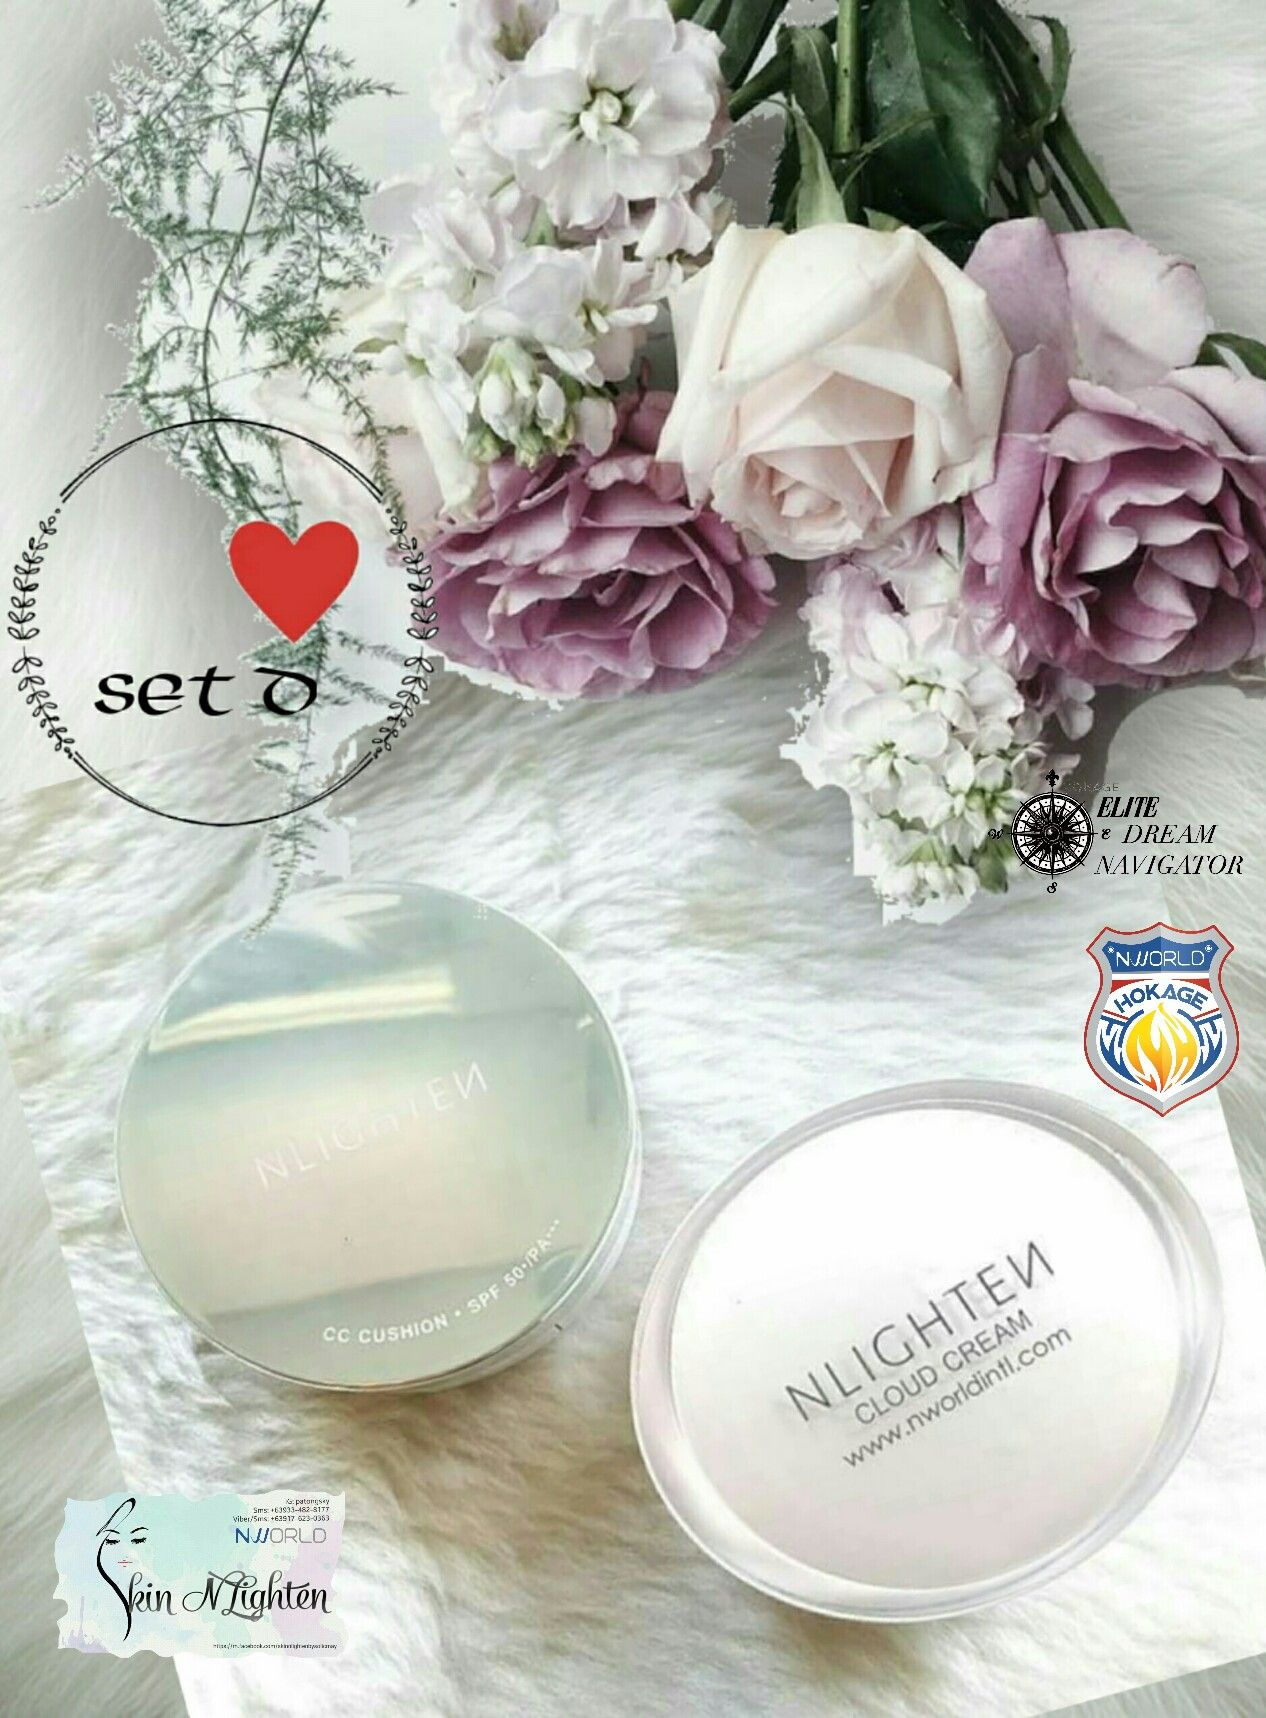 For Inquiries and Orders:  Marisol P. Icmat FB Page : https://www.facebook.com/skinnlightenbysolicmat/ Sun: +63933-482-8177 Globe/Viber: +63917-623-0363  We Ship LOCAL and INTERNATIONAL